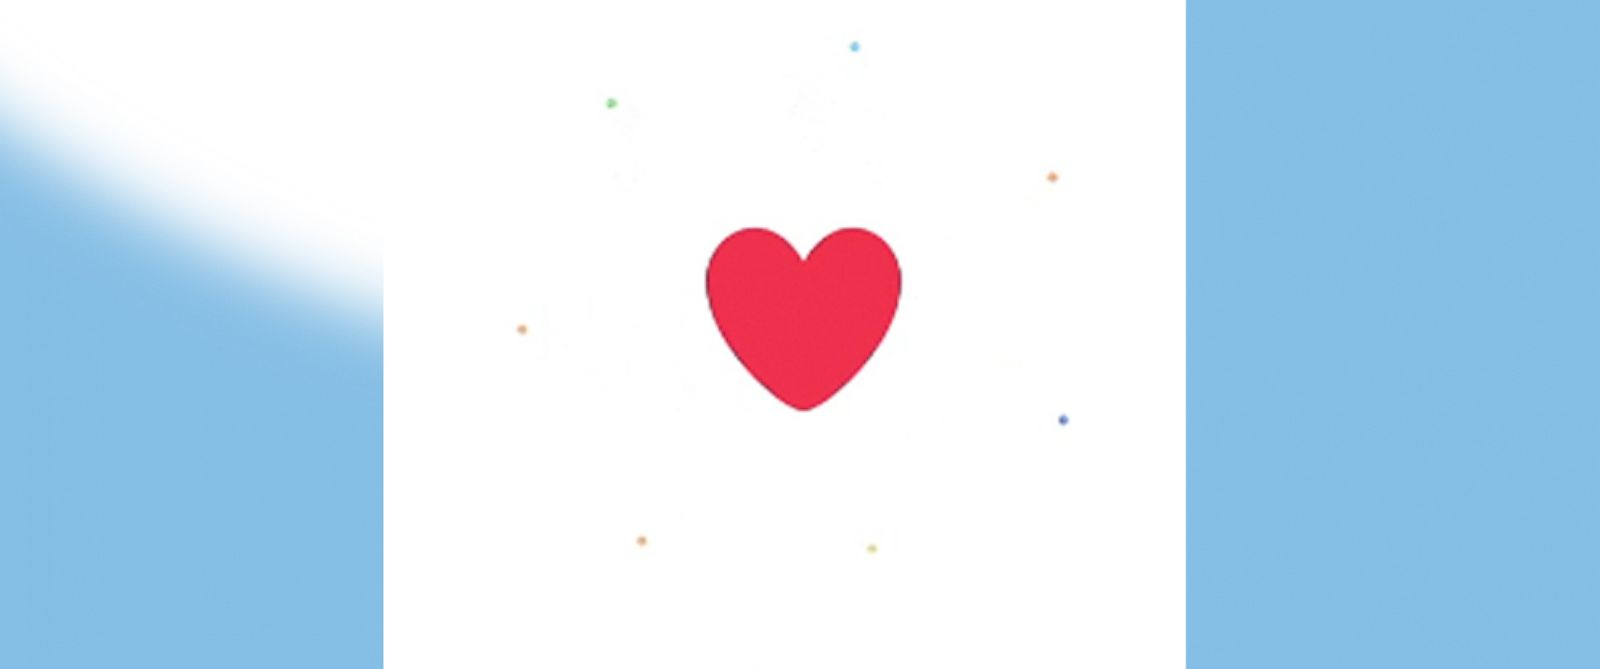 PHOTO:Twitter is changing its star for favoriting tweets to a heart.